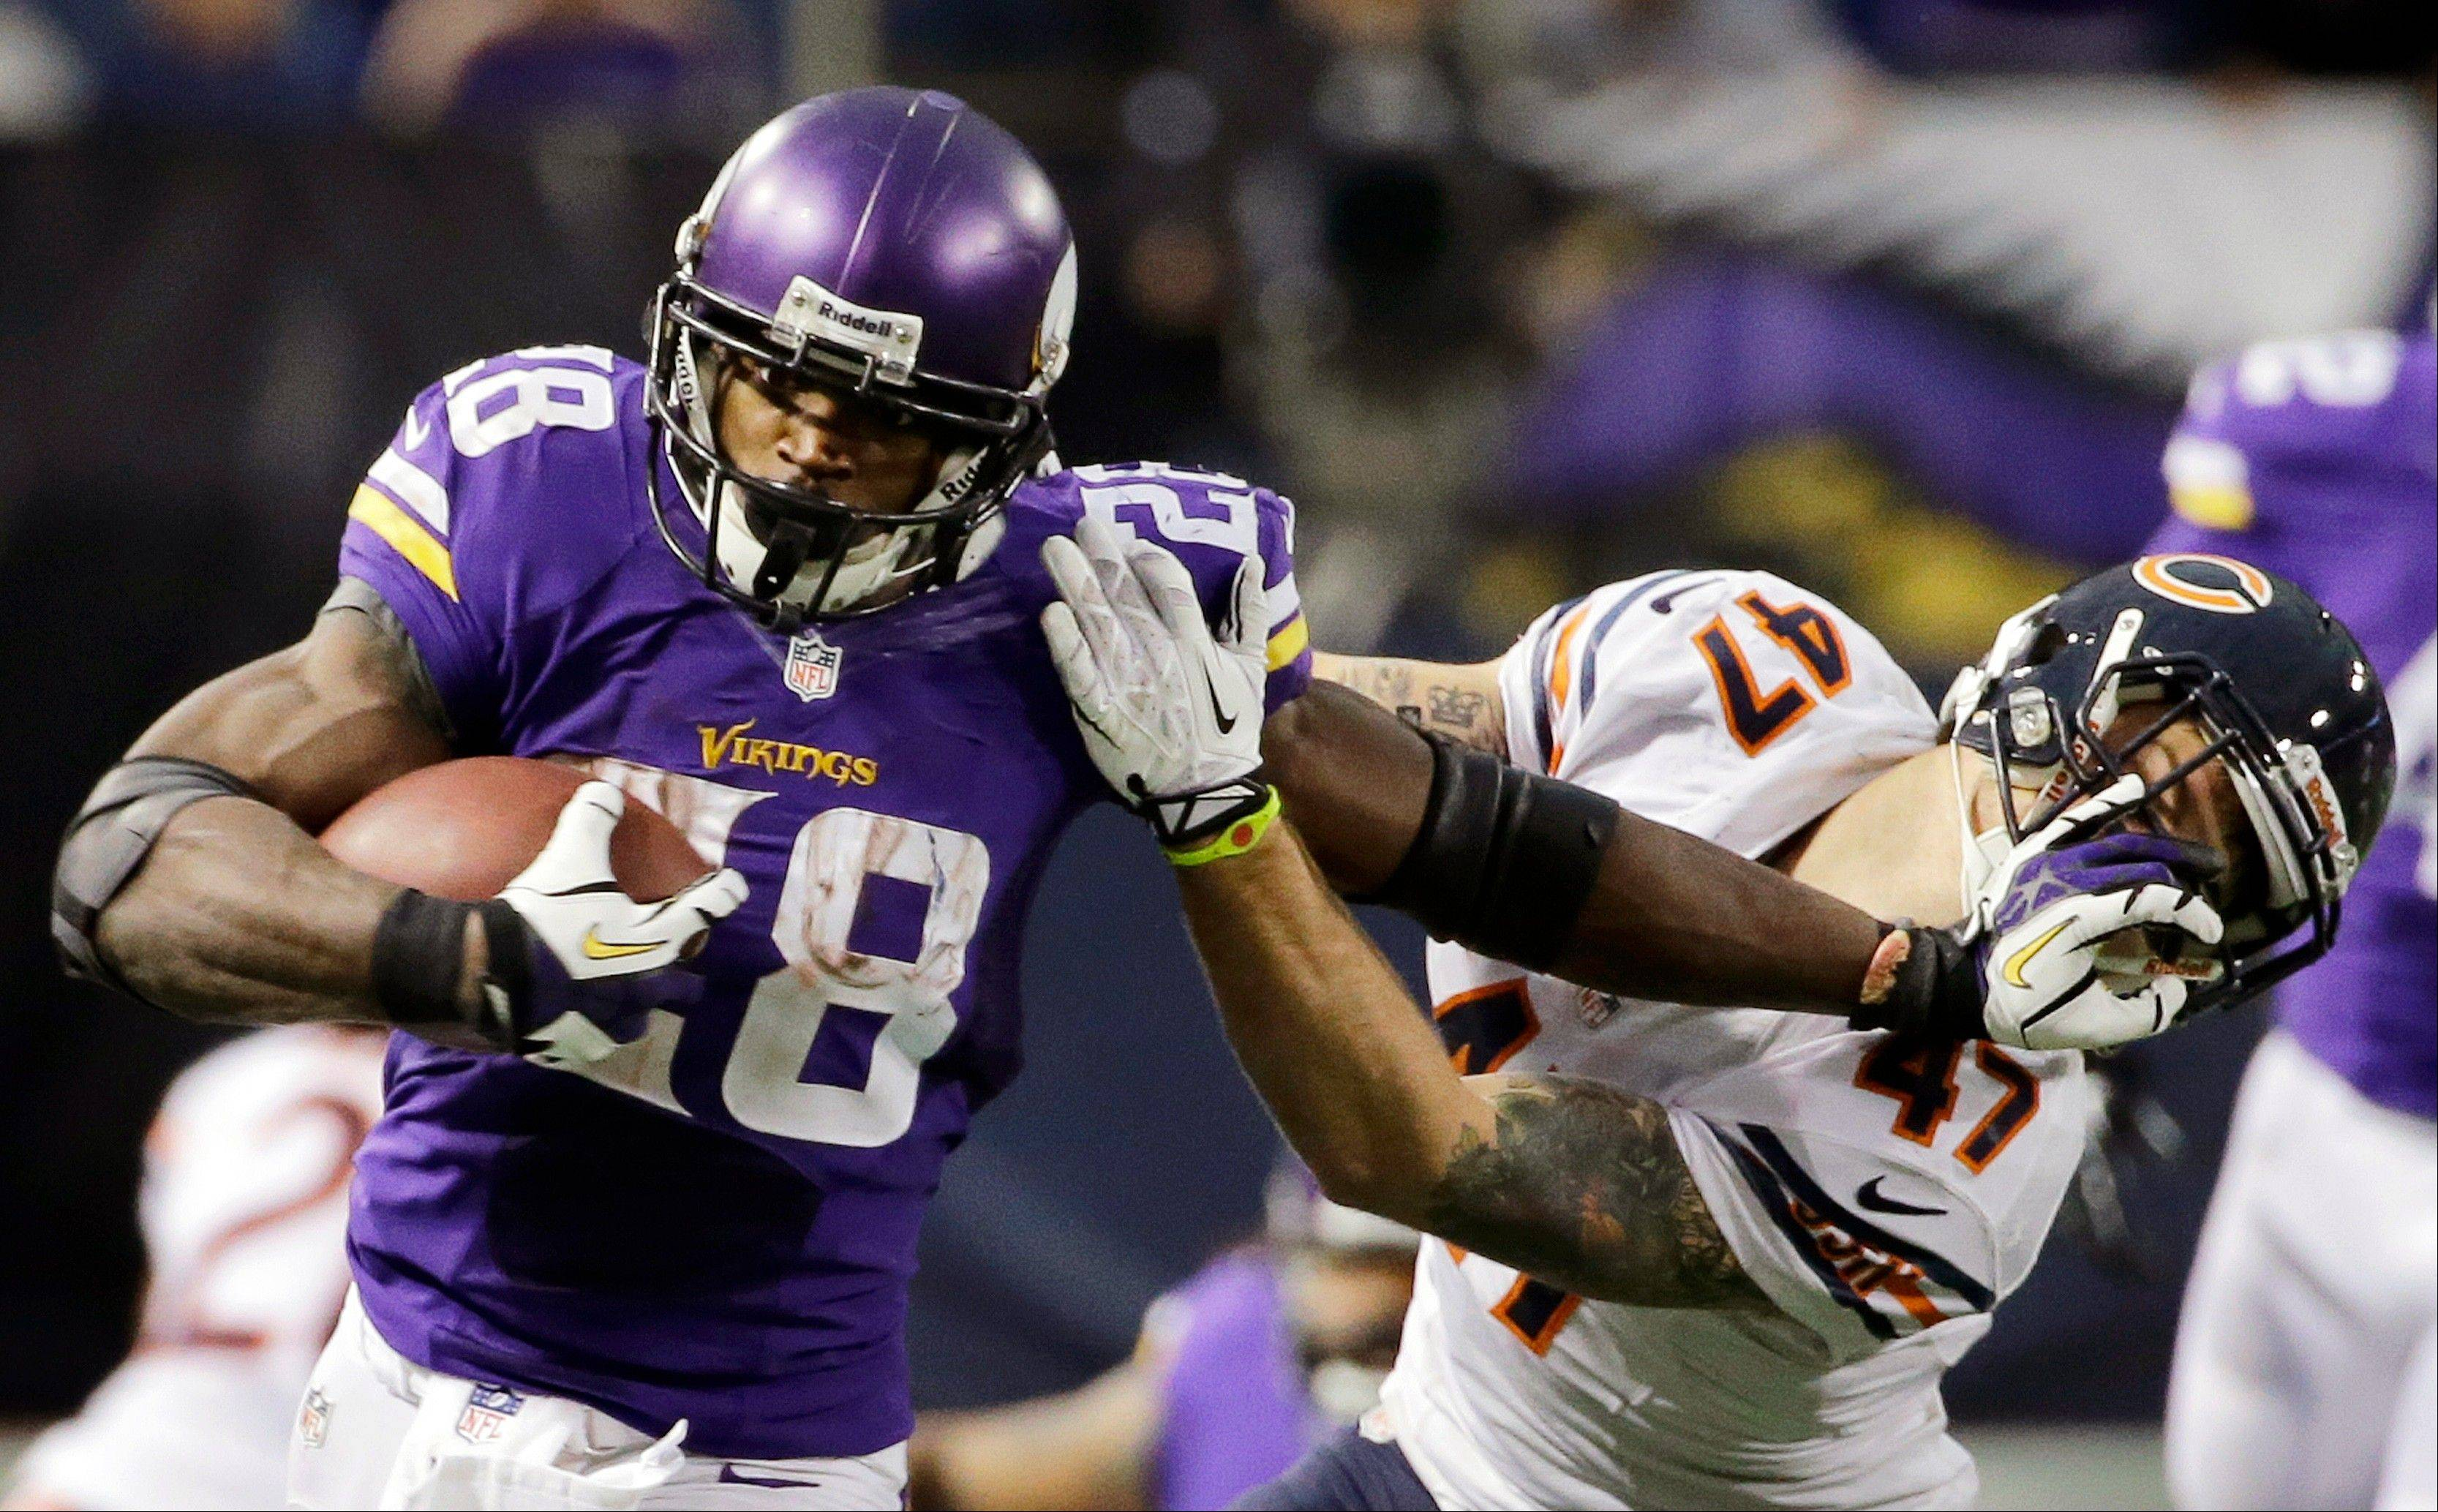 Vikings running back Adrian Peterson tries to break away from Bears safety Chris Conte during the fourth quarter Sunday. Peterson finished with 211 yards on a career-high 35 carries.